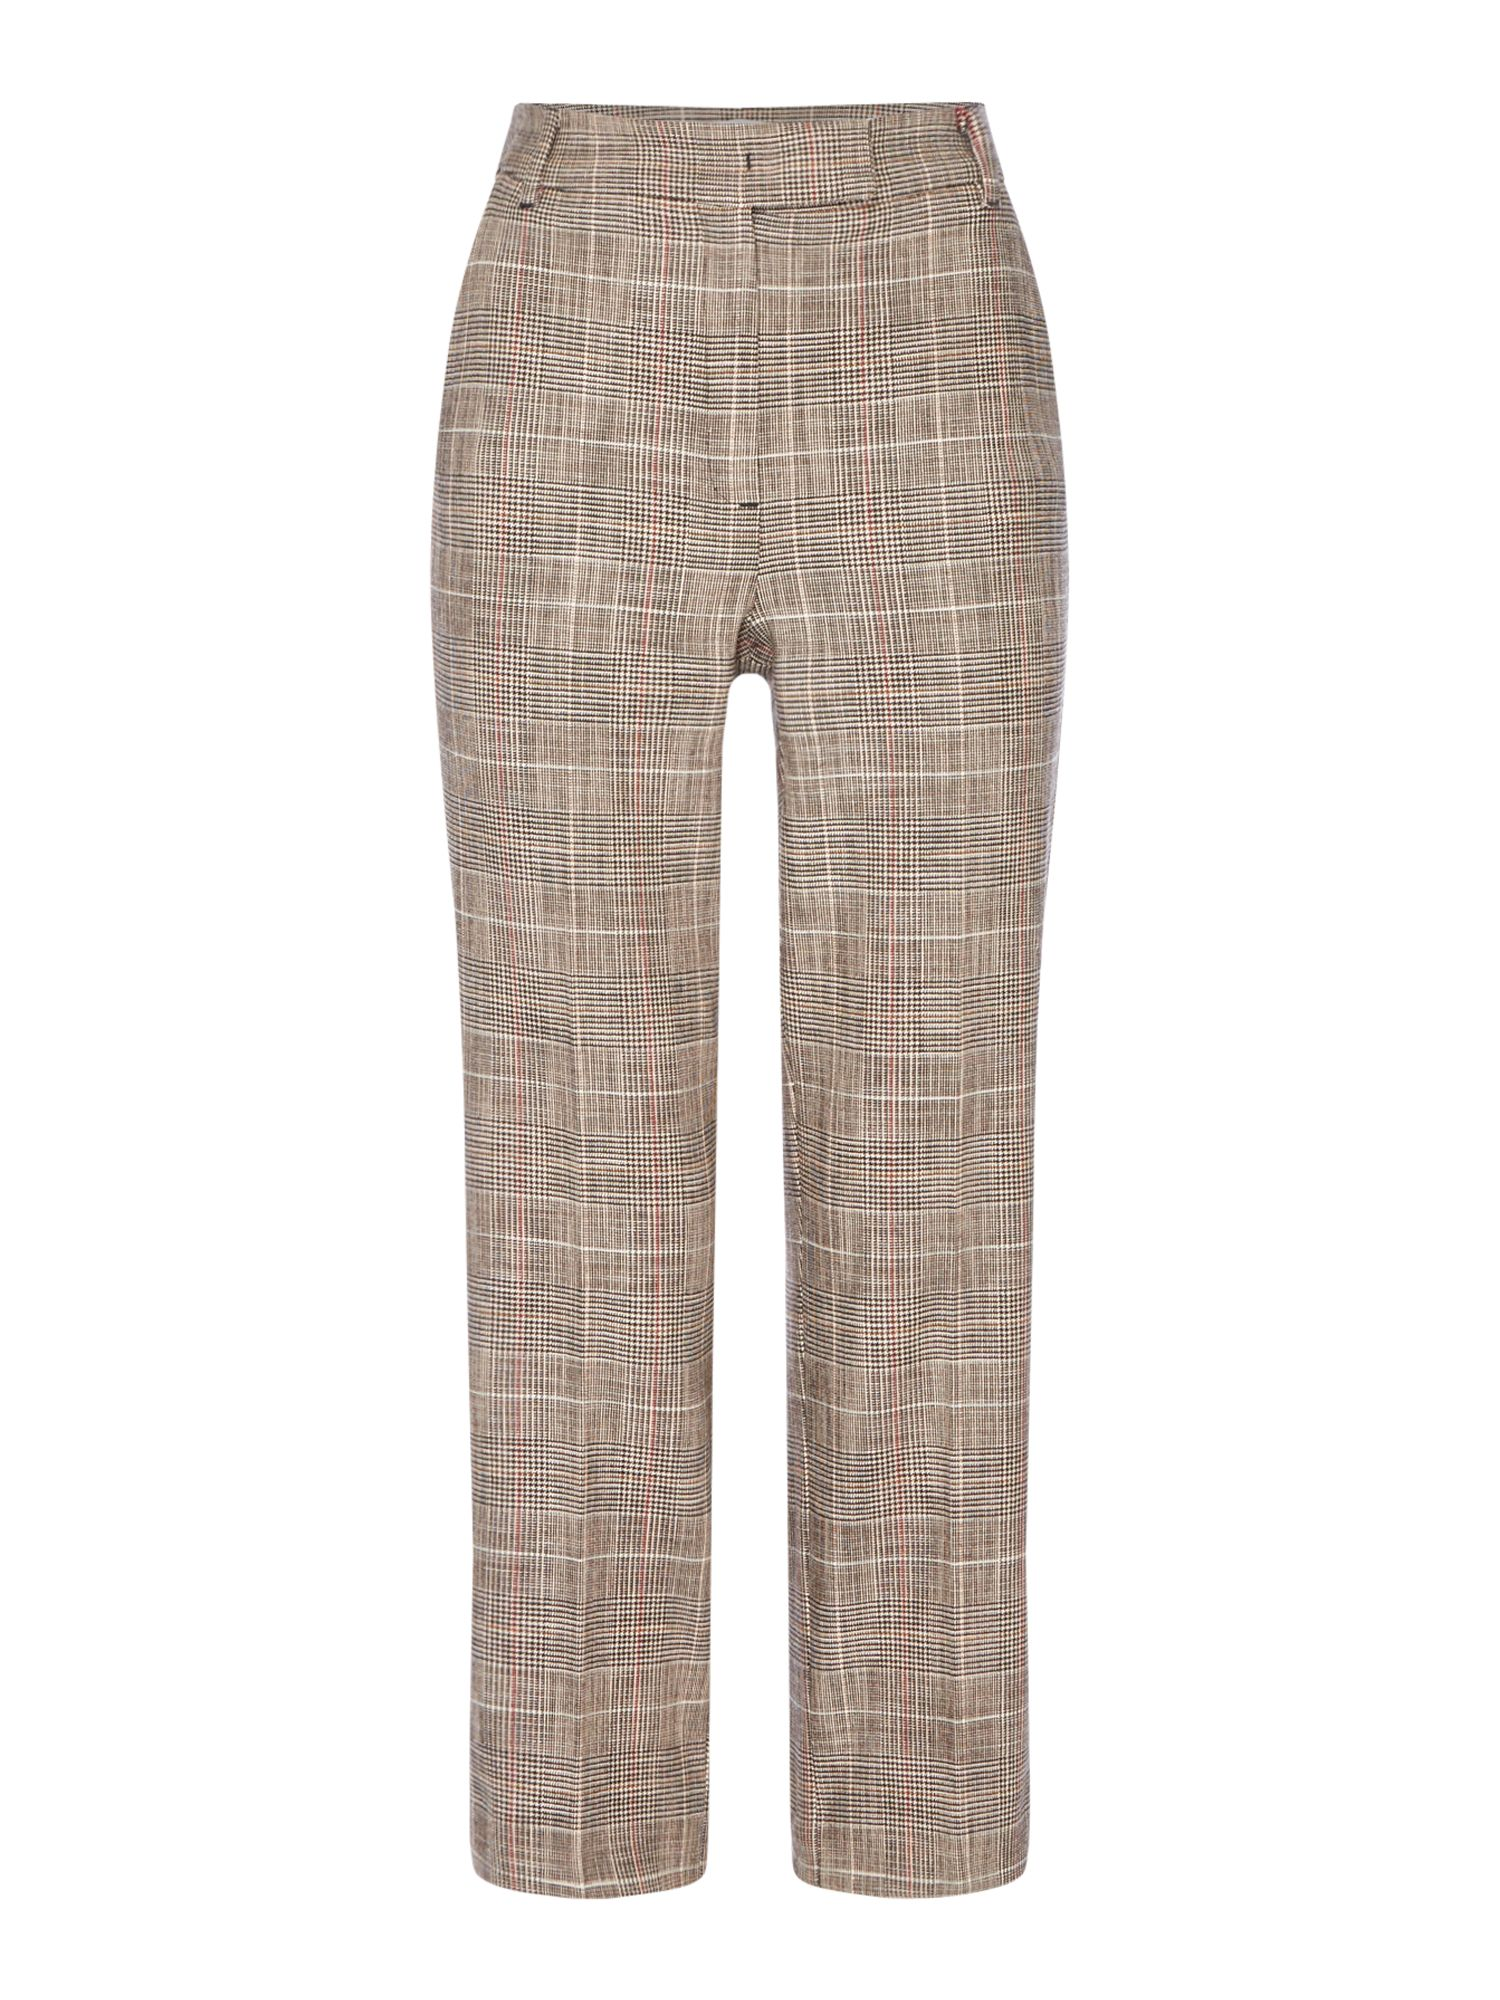 Marella Nausica checked cropped trouser, Light Grey